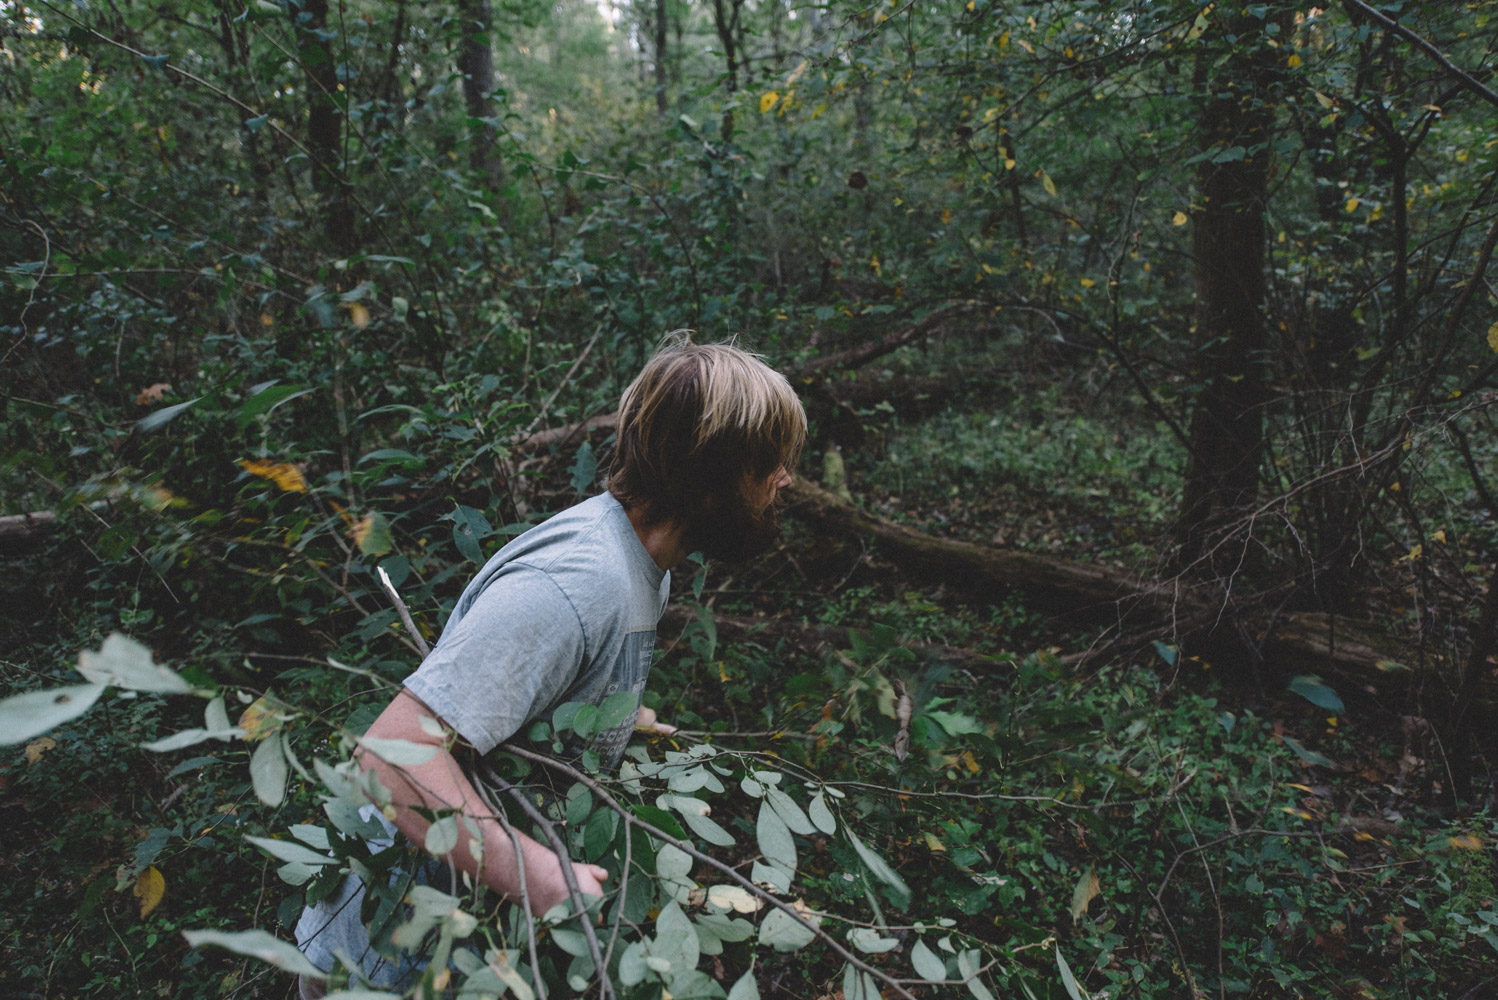 Scratch-Brewing-Co-Foraging-Carbondale-Ava-Illinois-Good-Beer-Hunting-Matt-Sampson-Photography_820.jpg